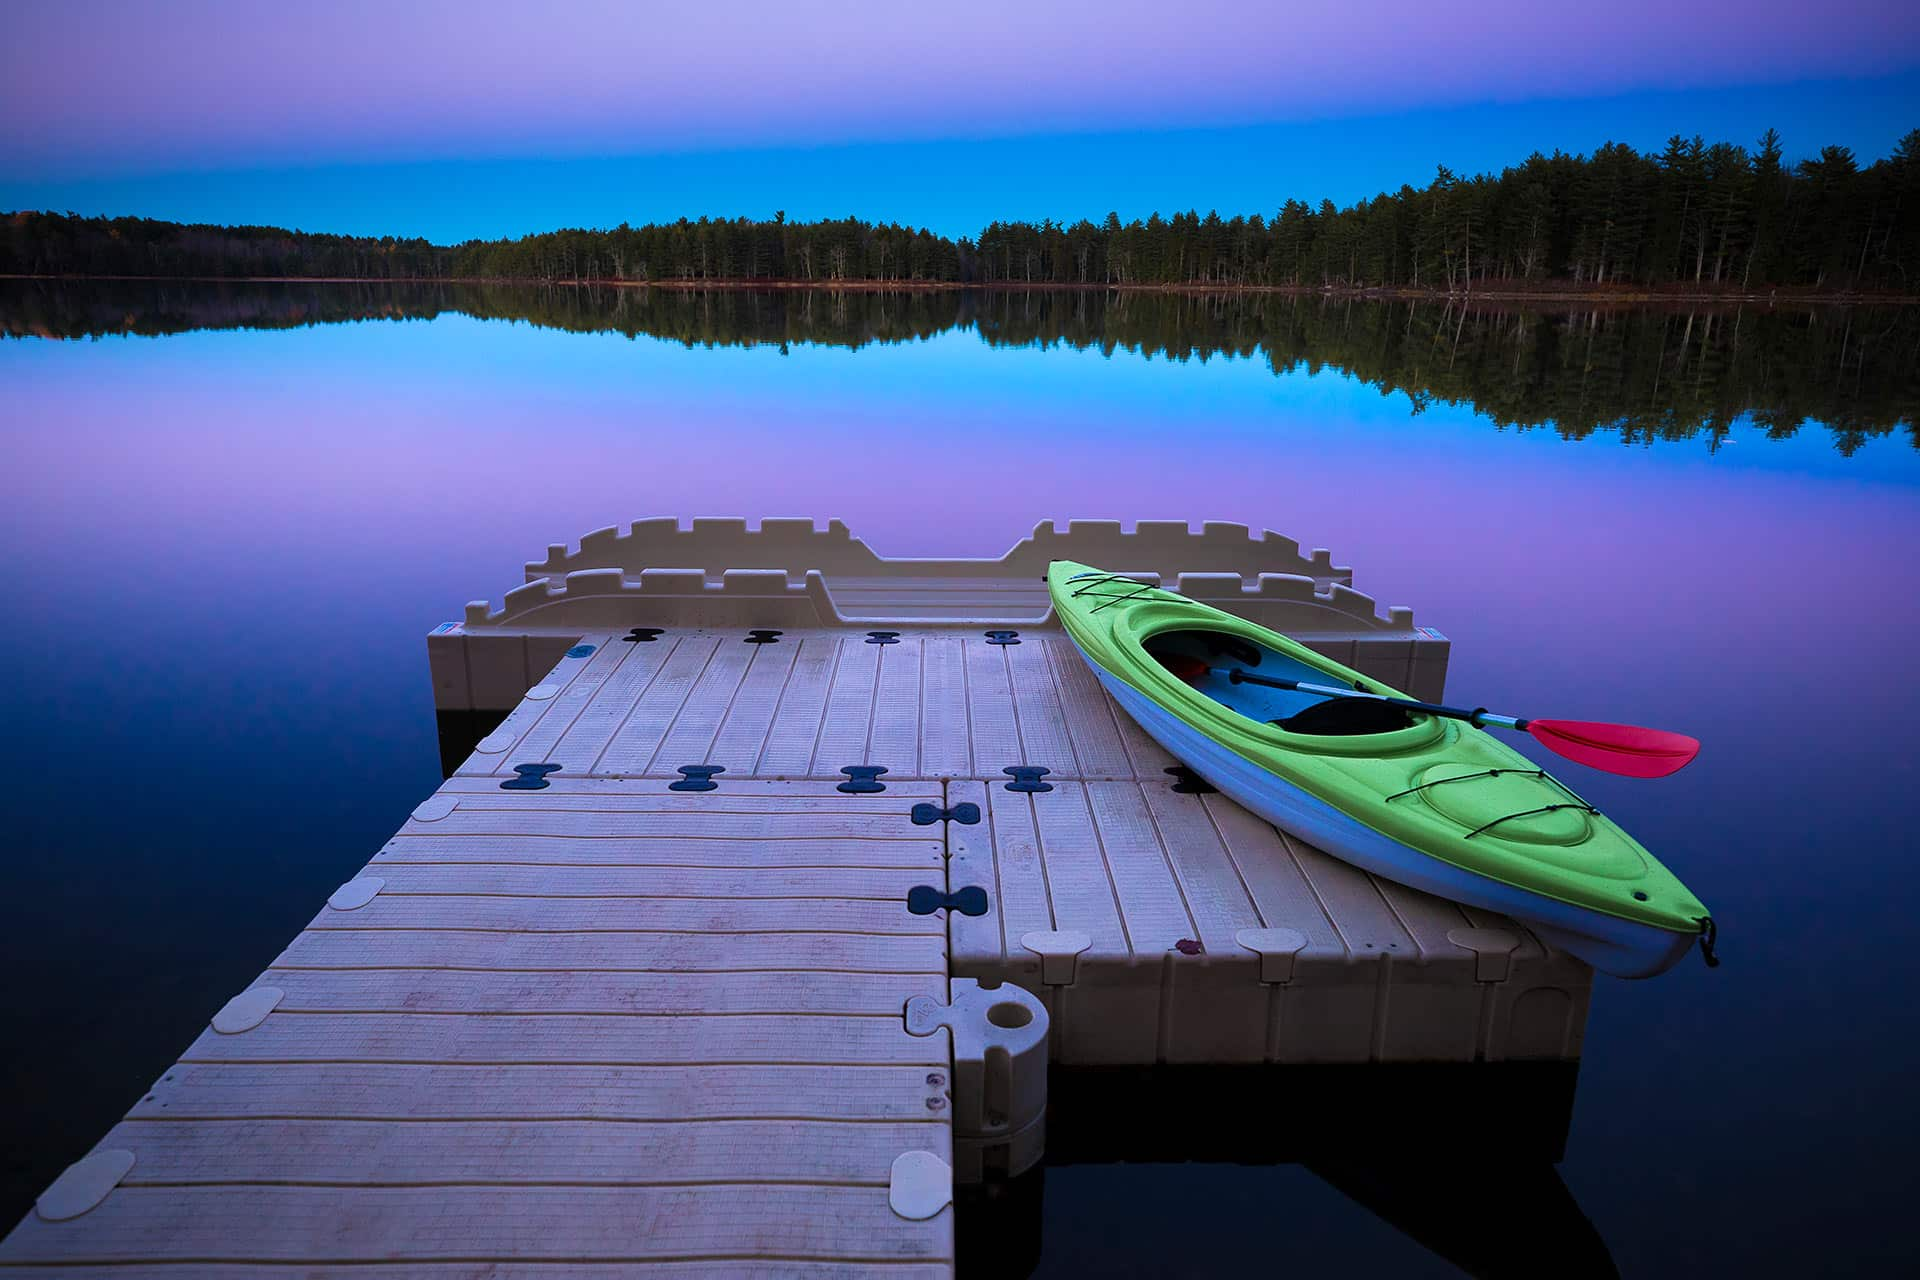 Kayak Docks